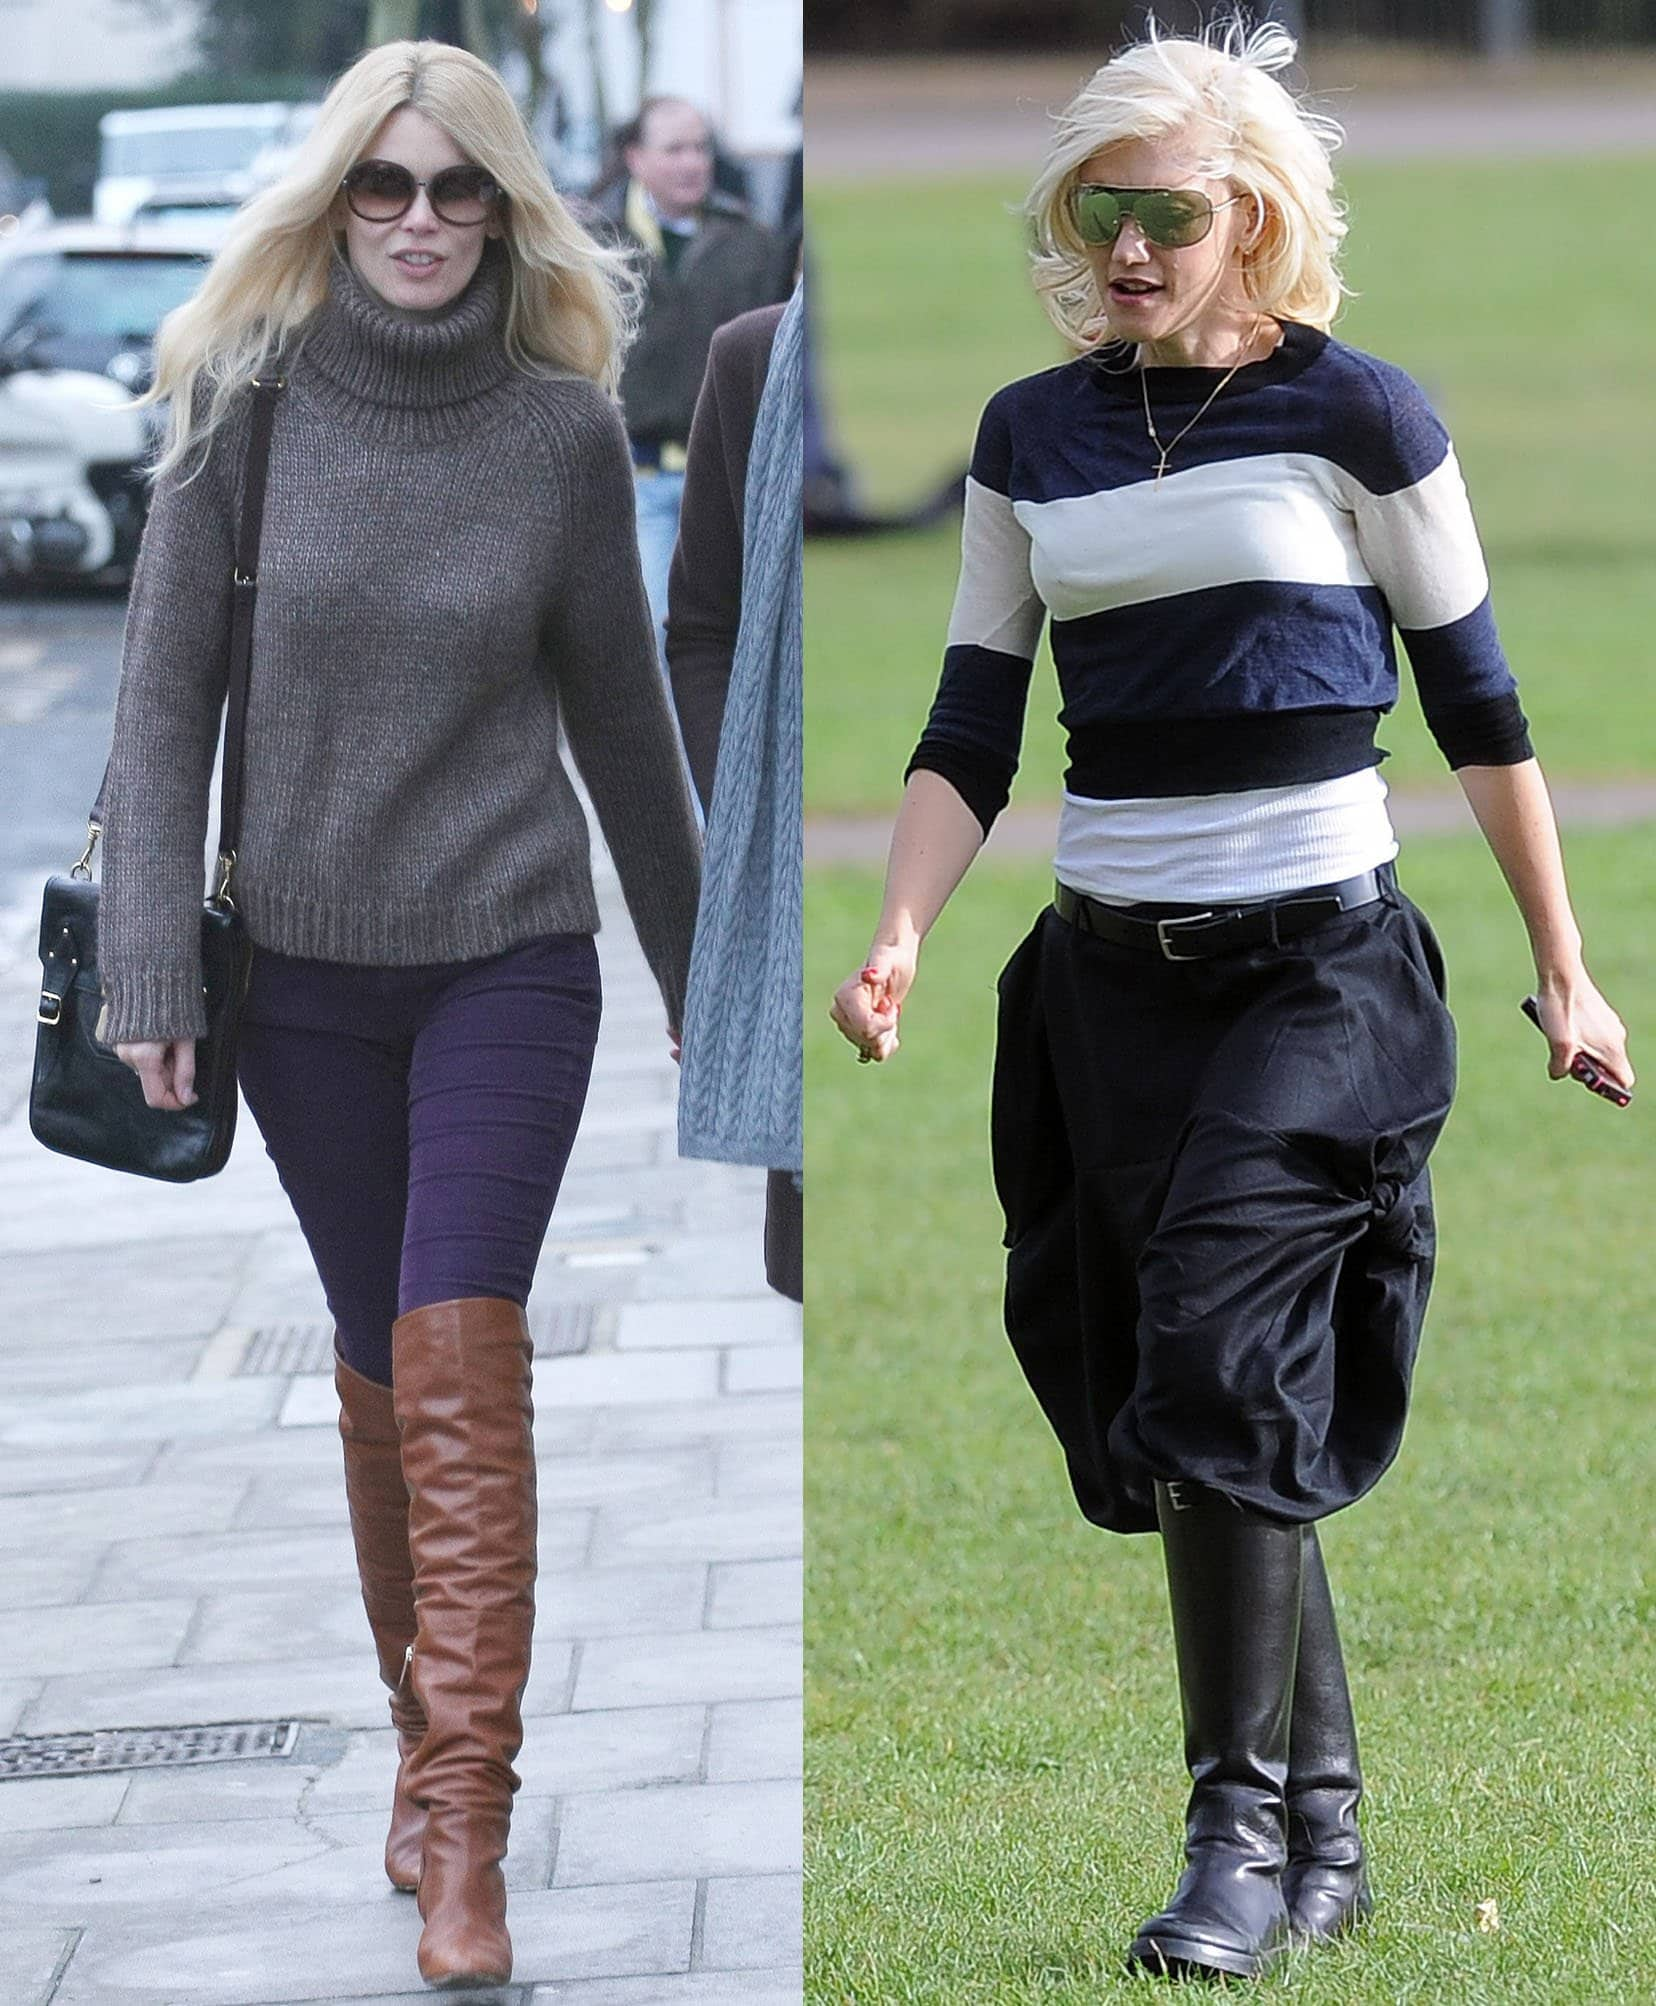 Claudia Schiffer and Gwen Stefani team their riding boots with knit sweater tops